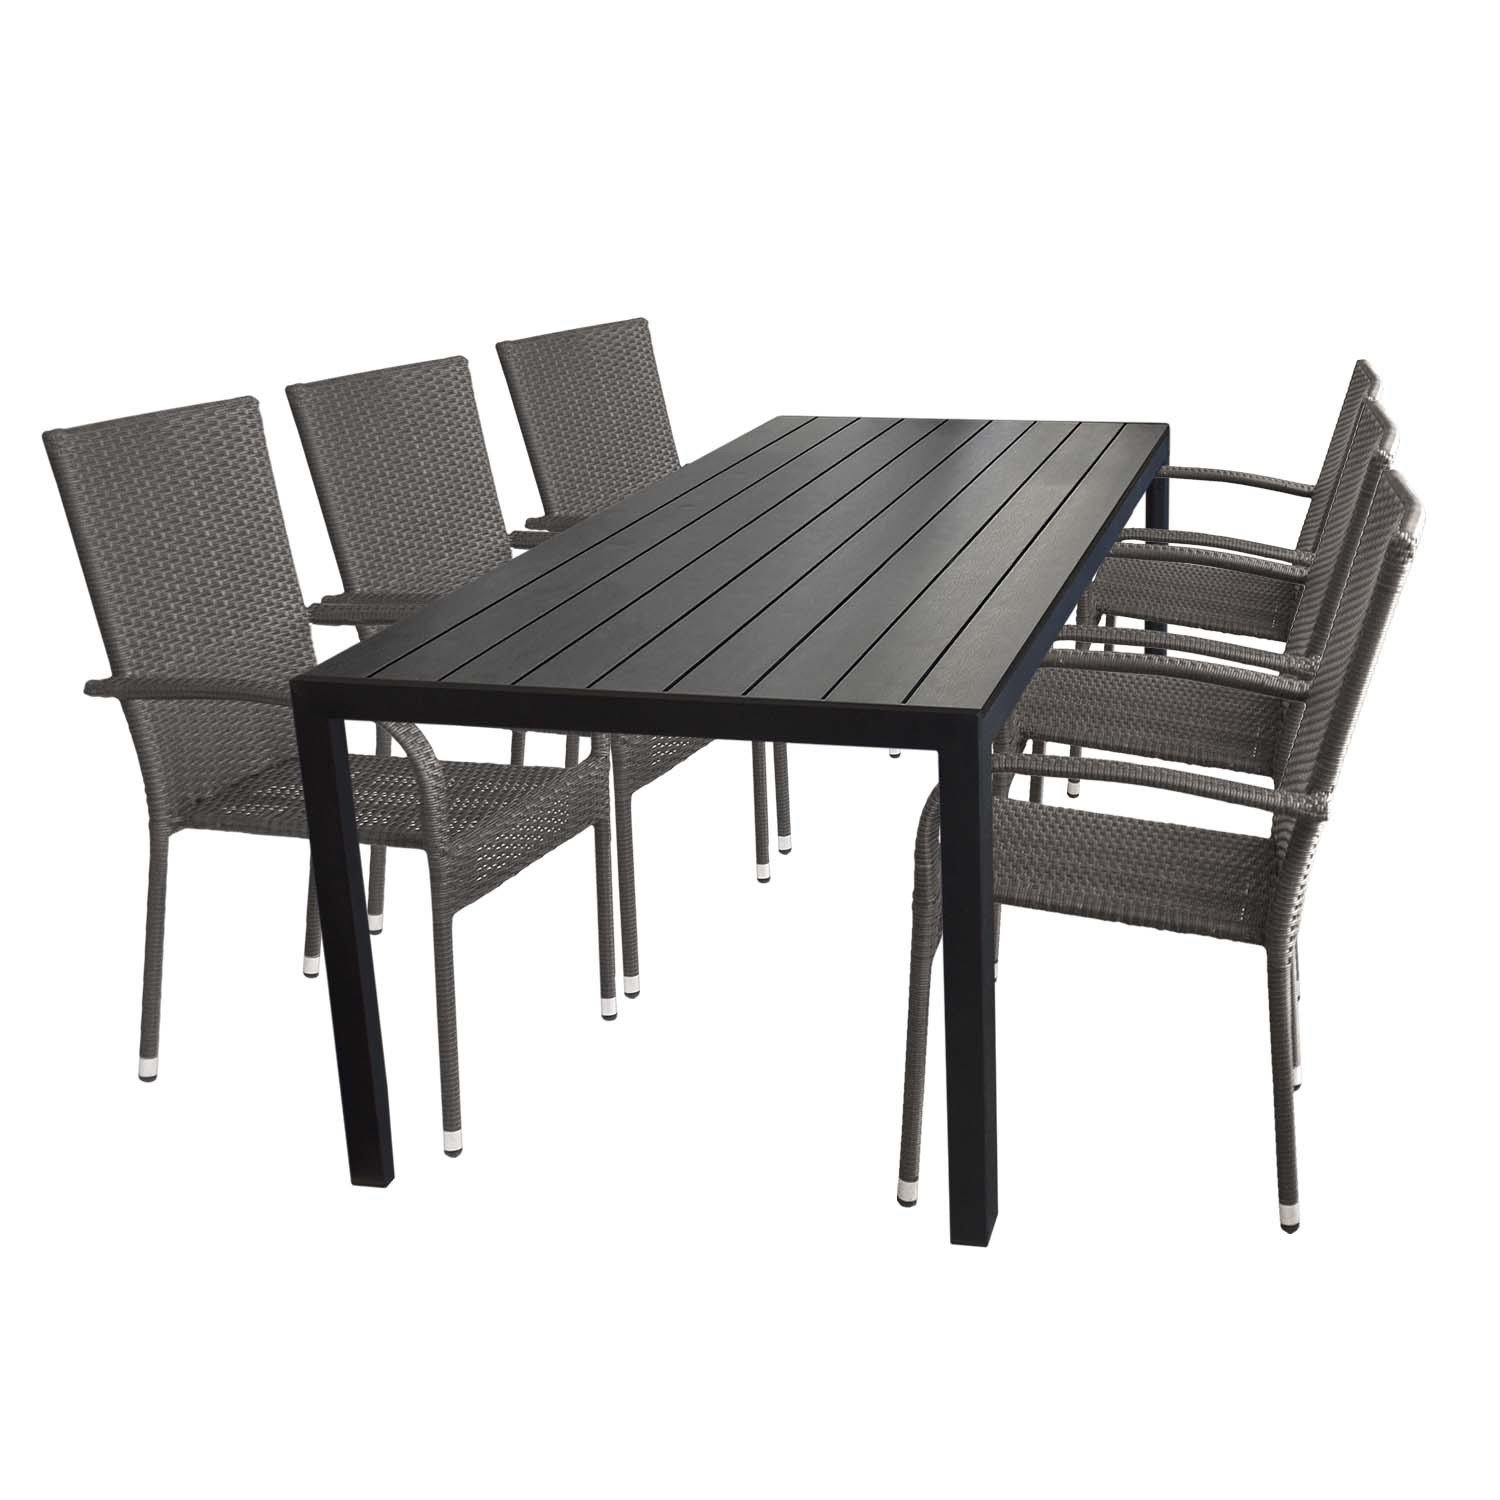 7tlg terrassenm bel set gartentisch aluminium polywood 205x90cm schwarz 6x stapelbarer. Black Bedroom Furniture Sets. Home Design Ideas